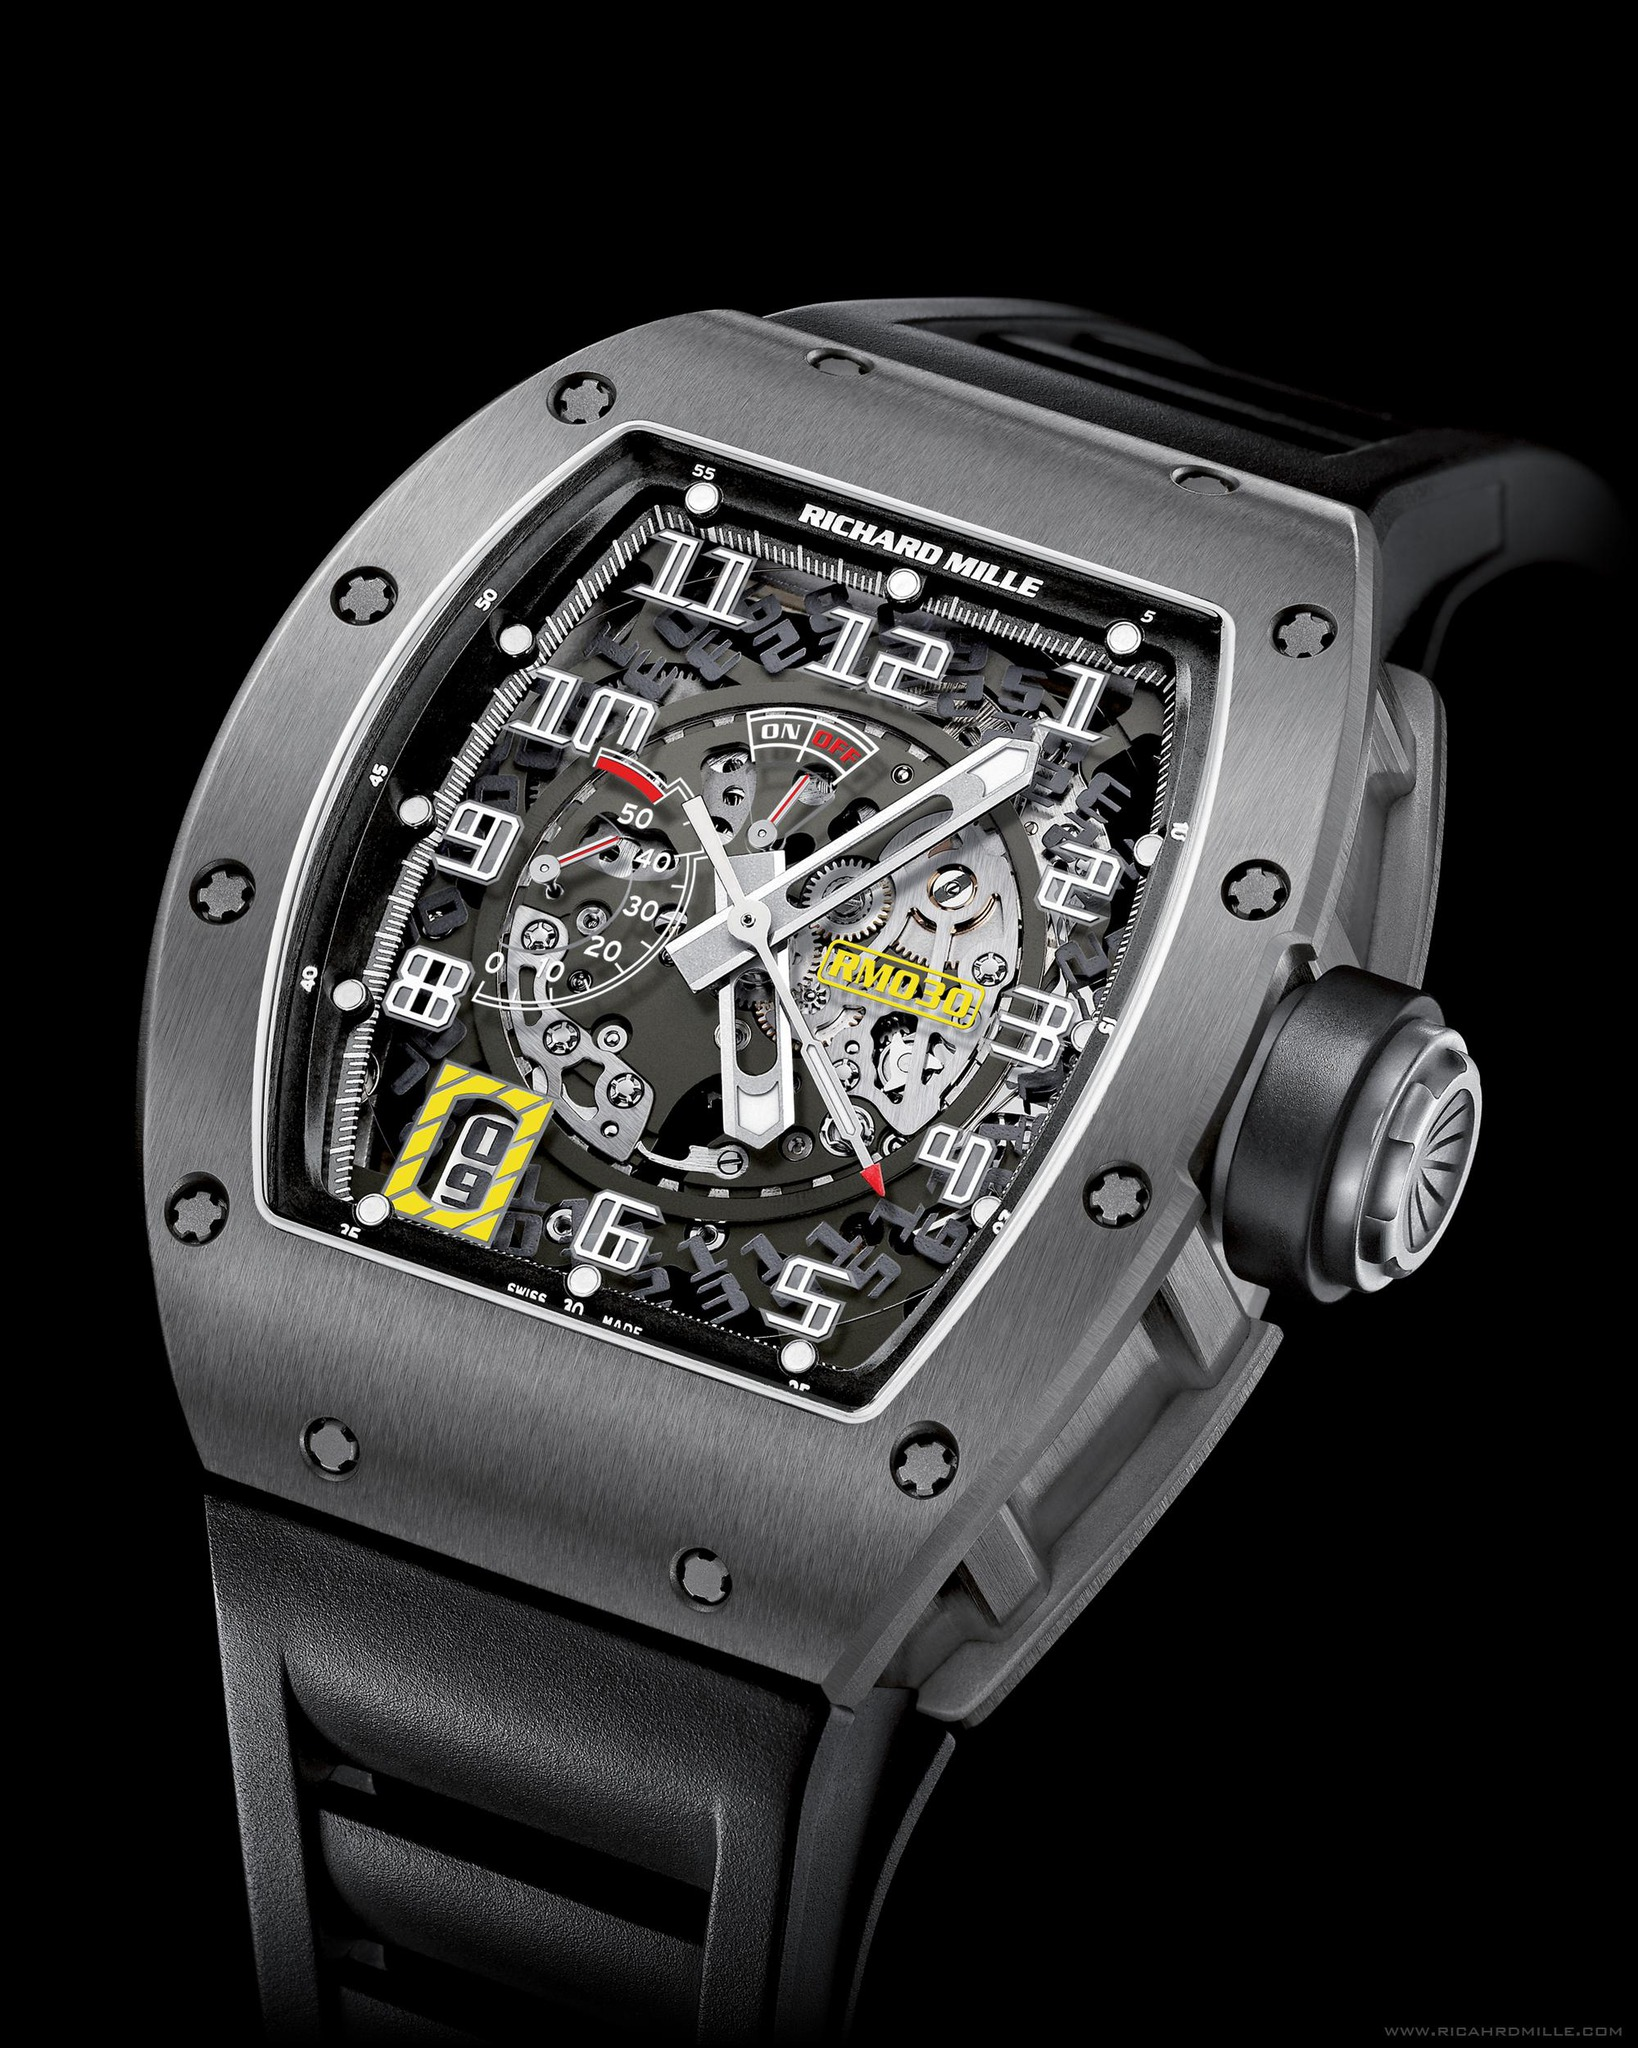 Replica Richard Mille RM 030 Watch RM 030 Automatic Declutchable Rotor Titanium